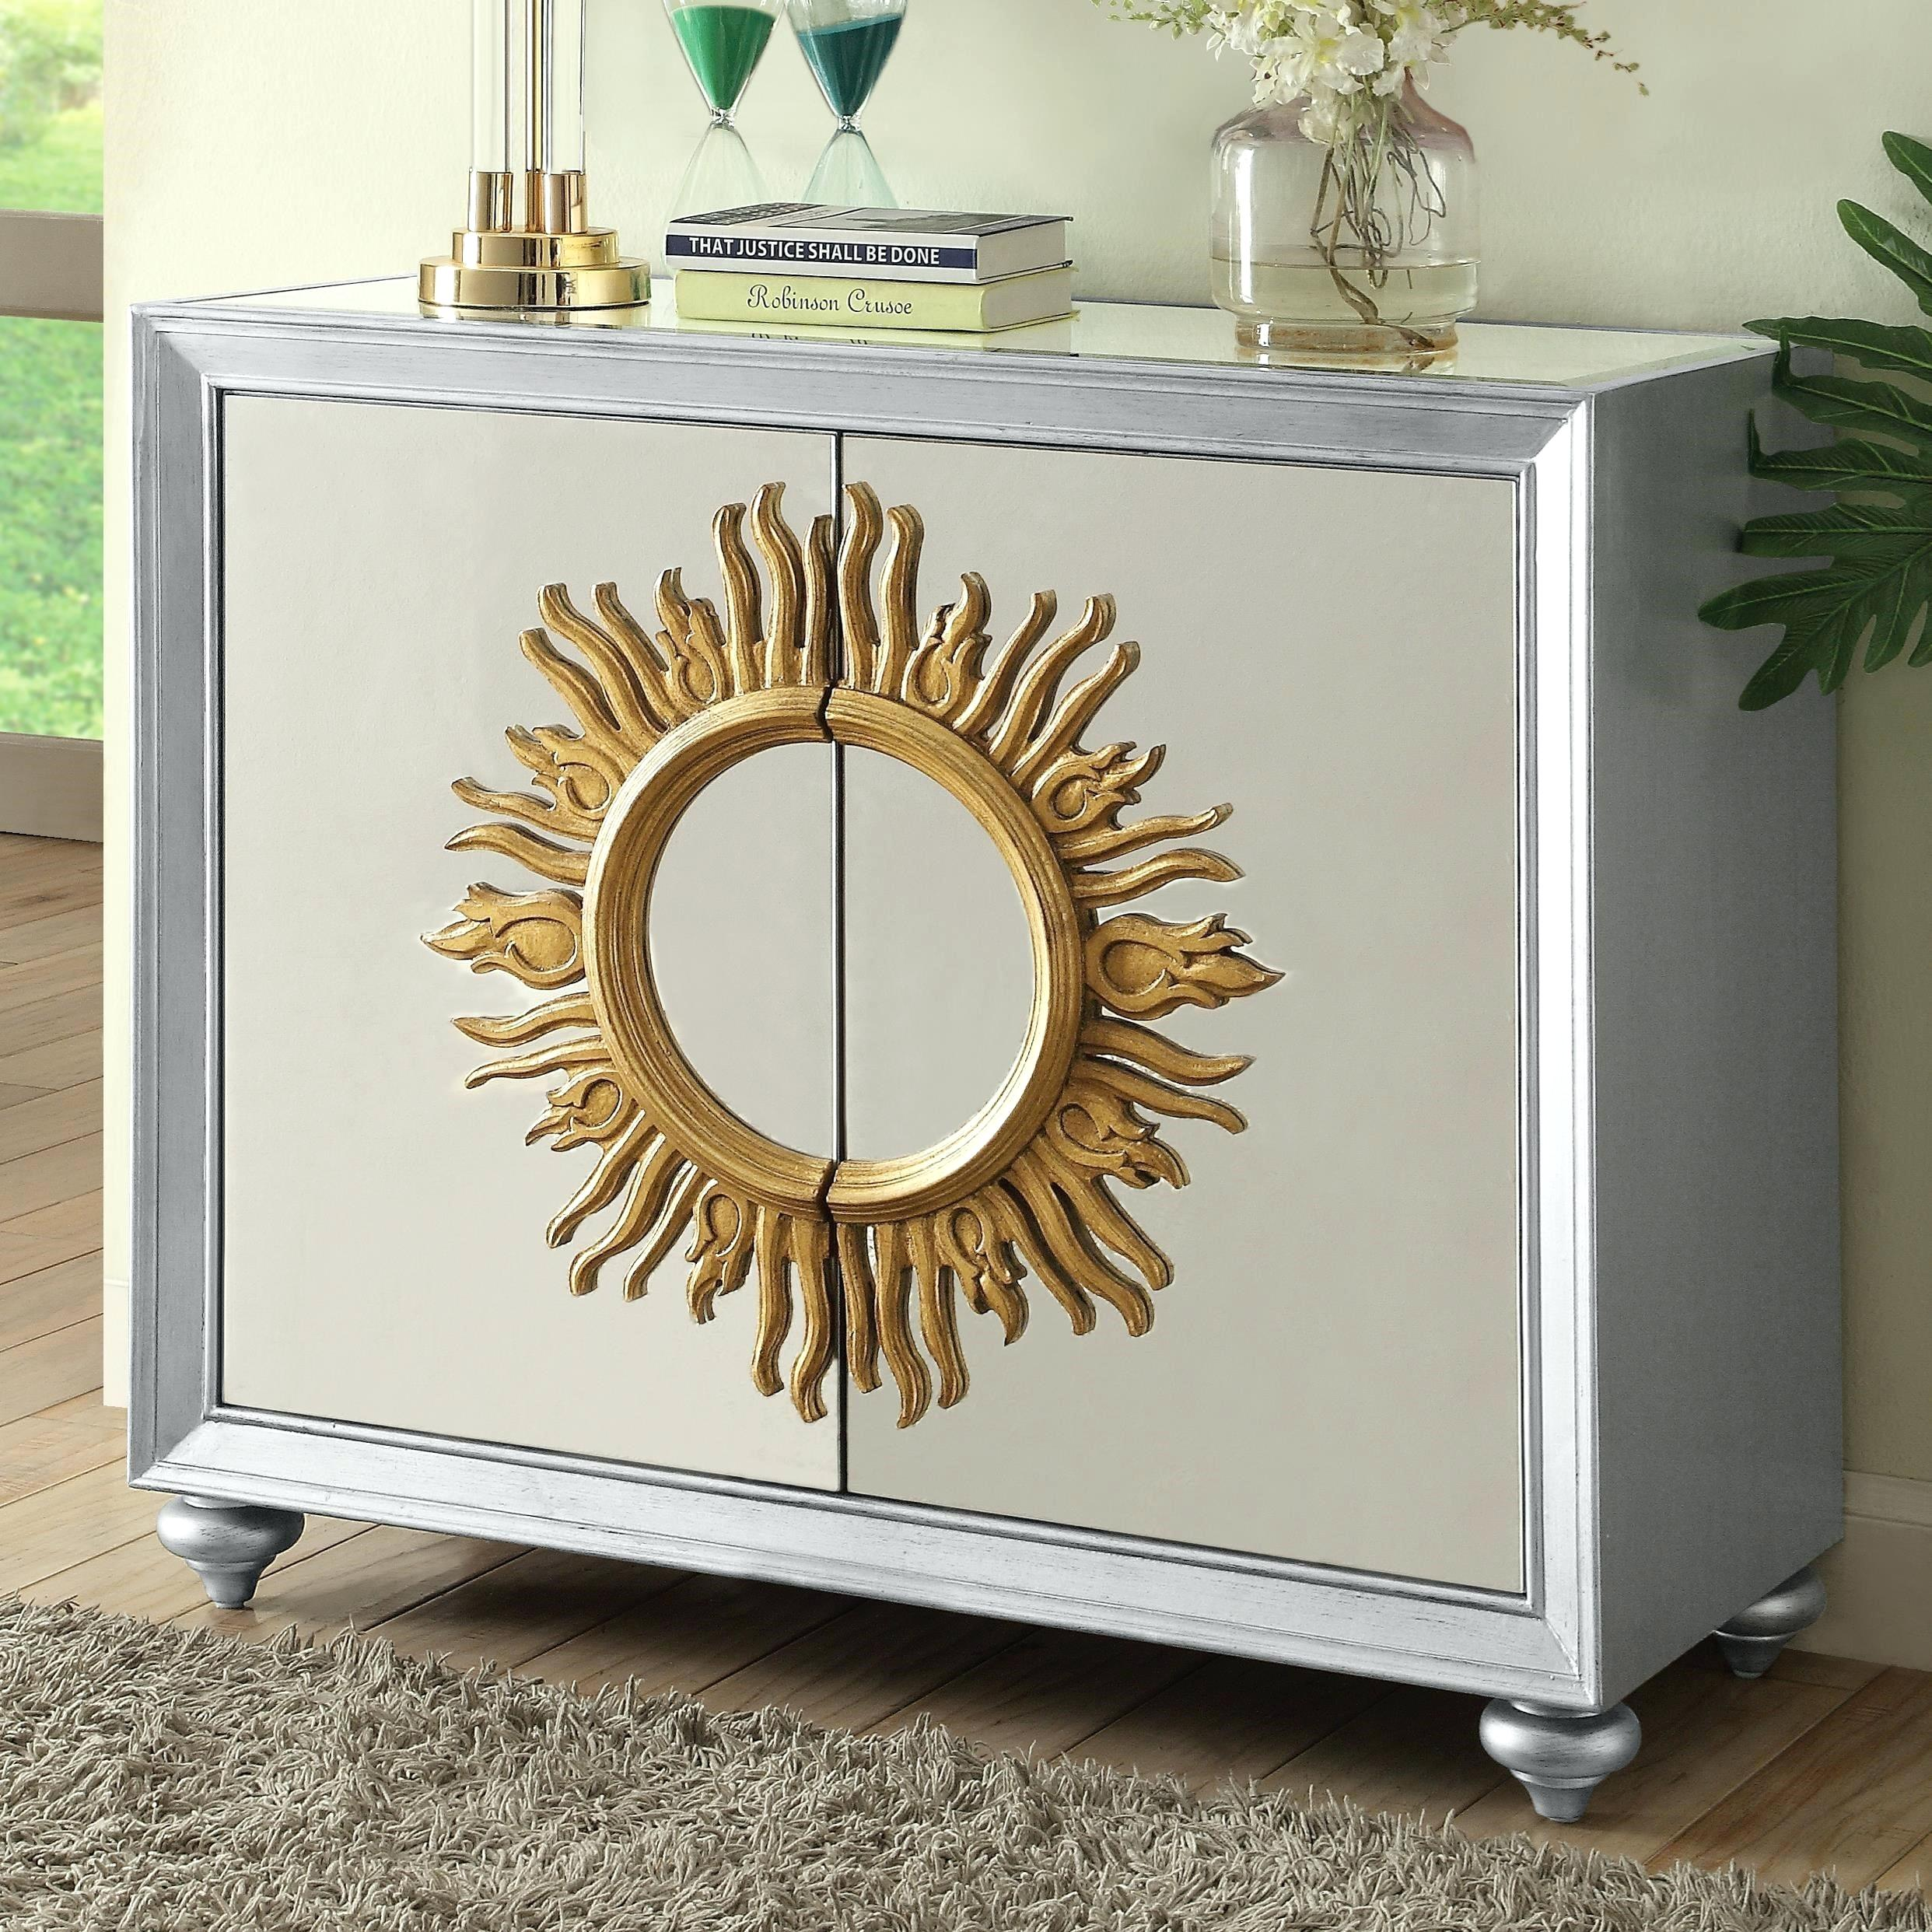 threshold accent cabinets cabinet one door teal coaster mirrored with sun design home ideas center christchurch candy table vintage hexagon side height adjustable desk backyard